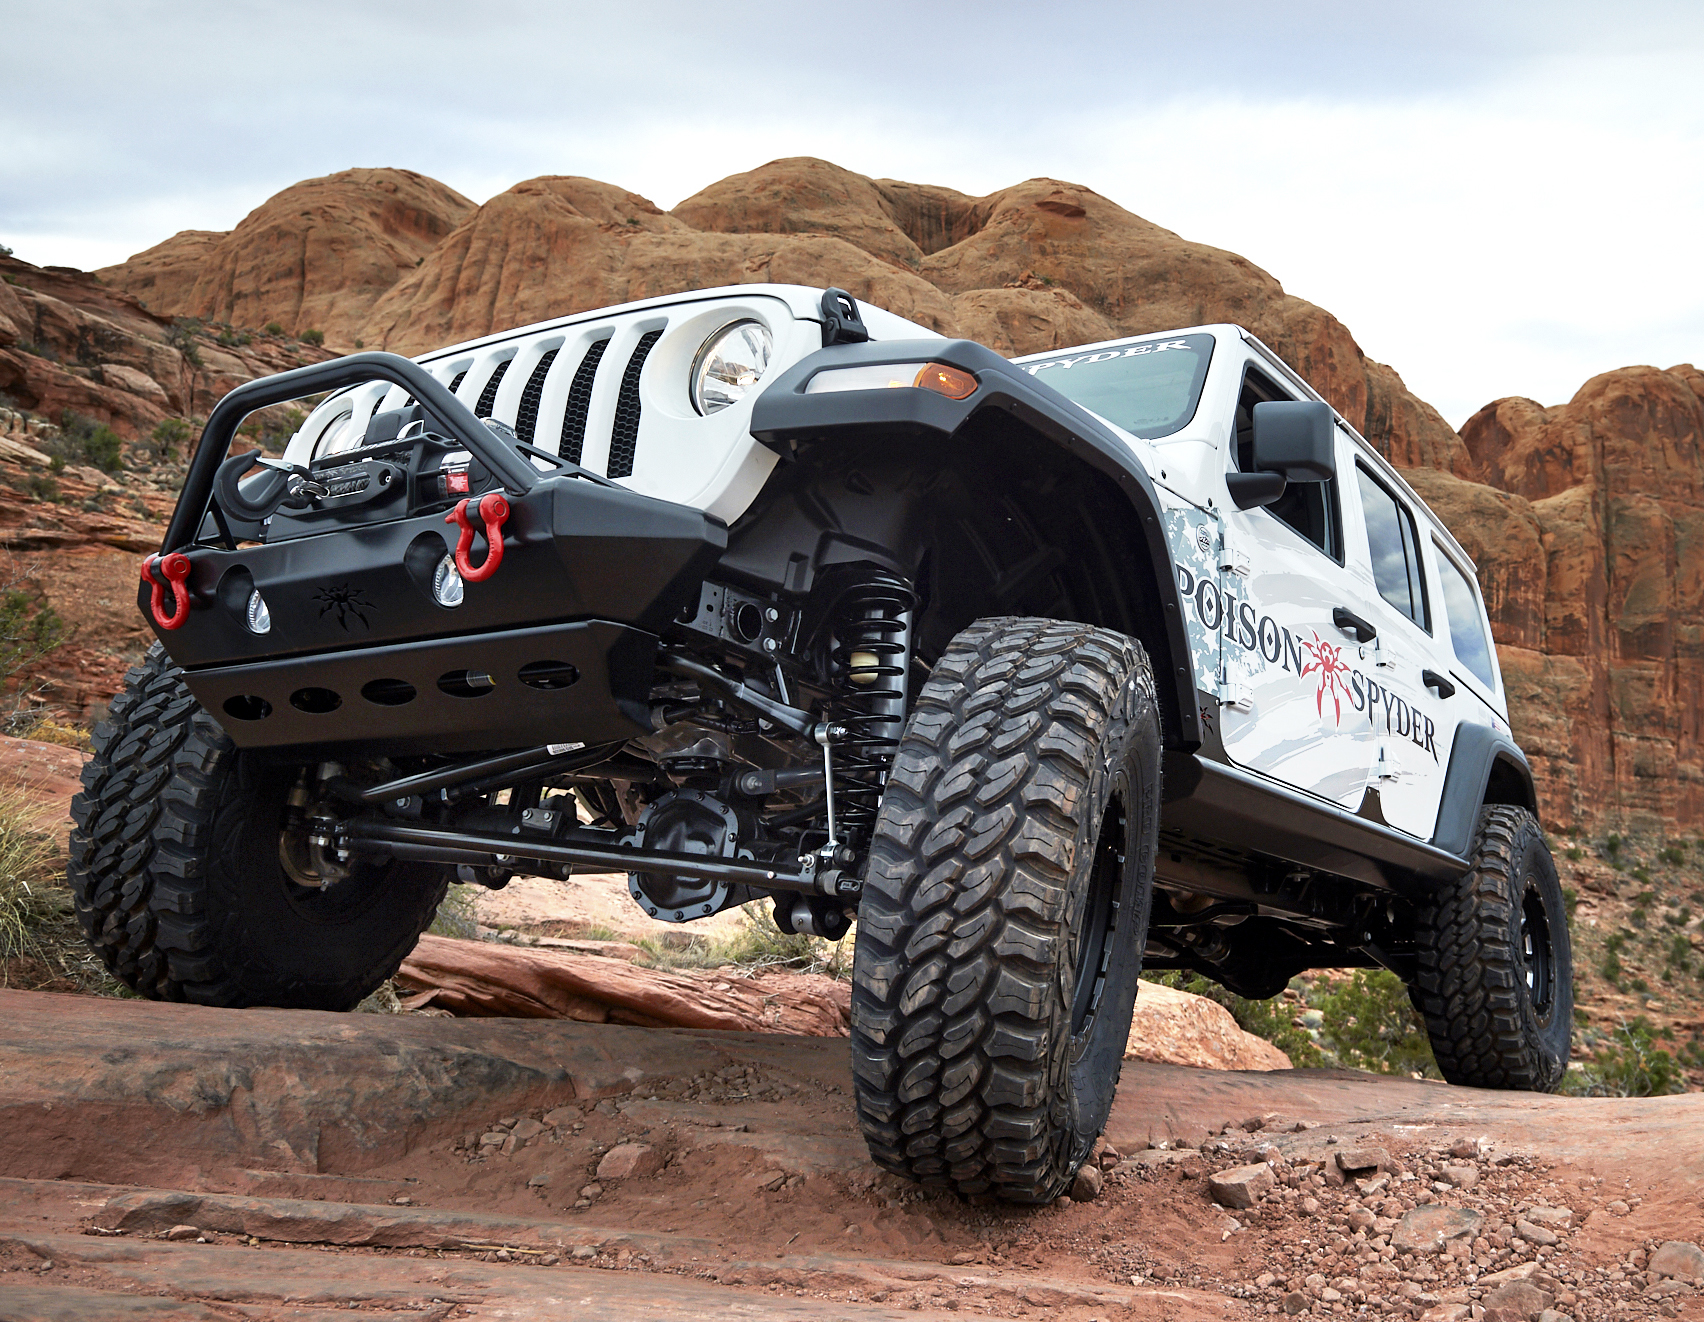 Poison Spyder Newest Products For The Jeep Wrangler Jl And Jk Parts Frame Both Bruiser Crawler Bumpers Offer Matching Rear That Are Compatible With Spyders Mounted Tire Carrier Ultimate